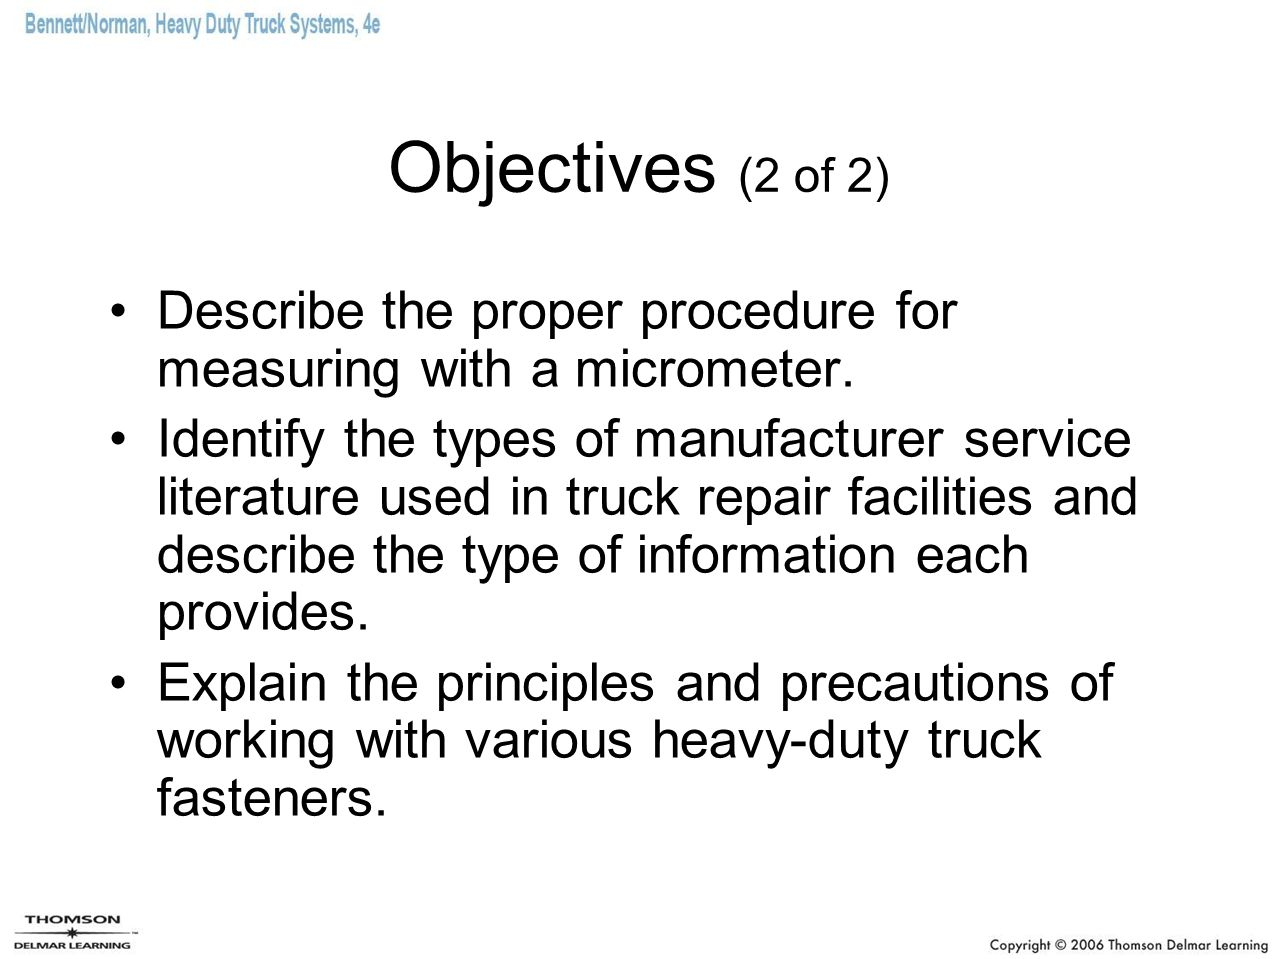 Objectives (2 of 2) Describe the proper procedure for measuring with a micrometer.